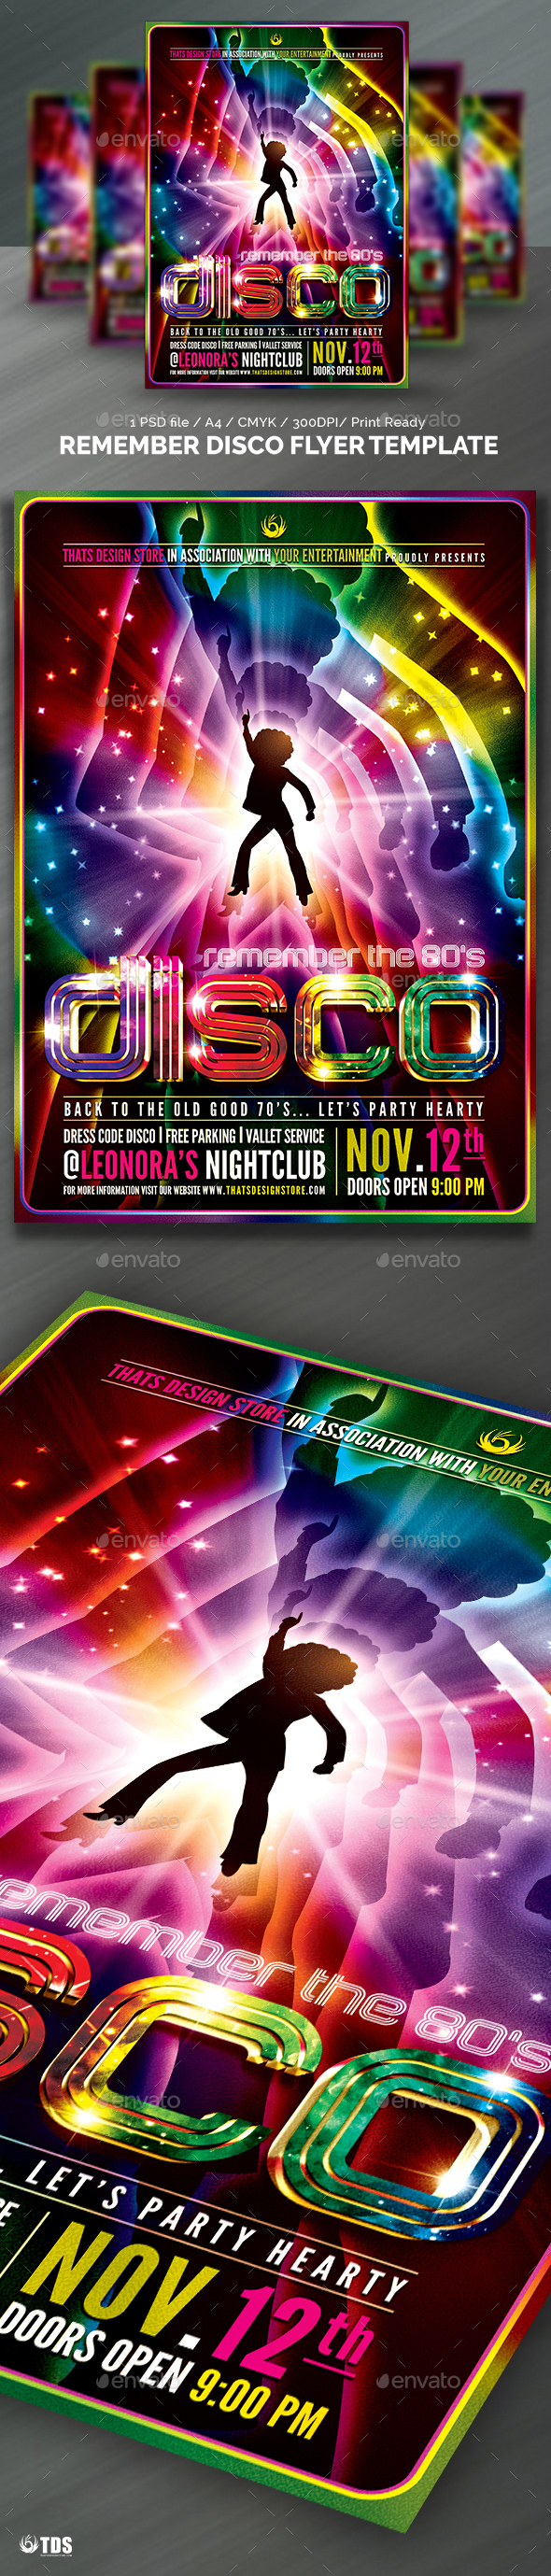 Remember Disco Flyer Template | Flyer template